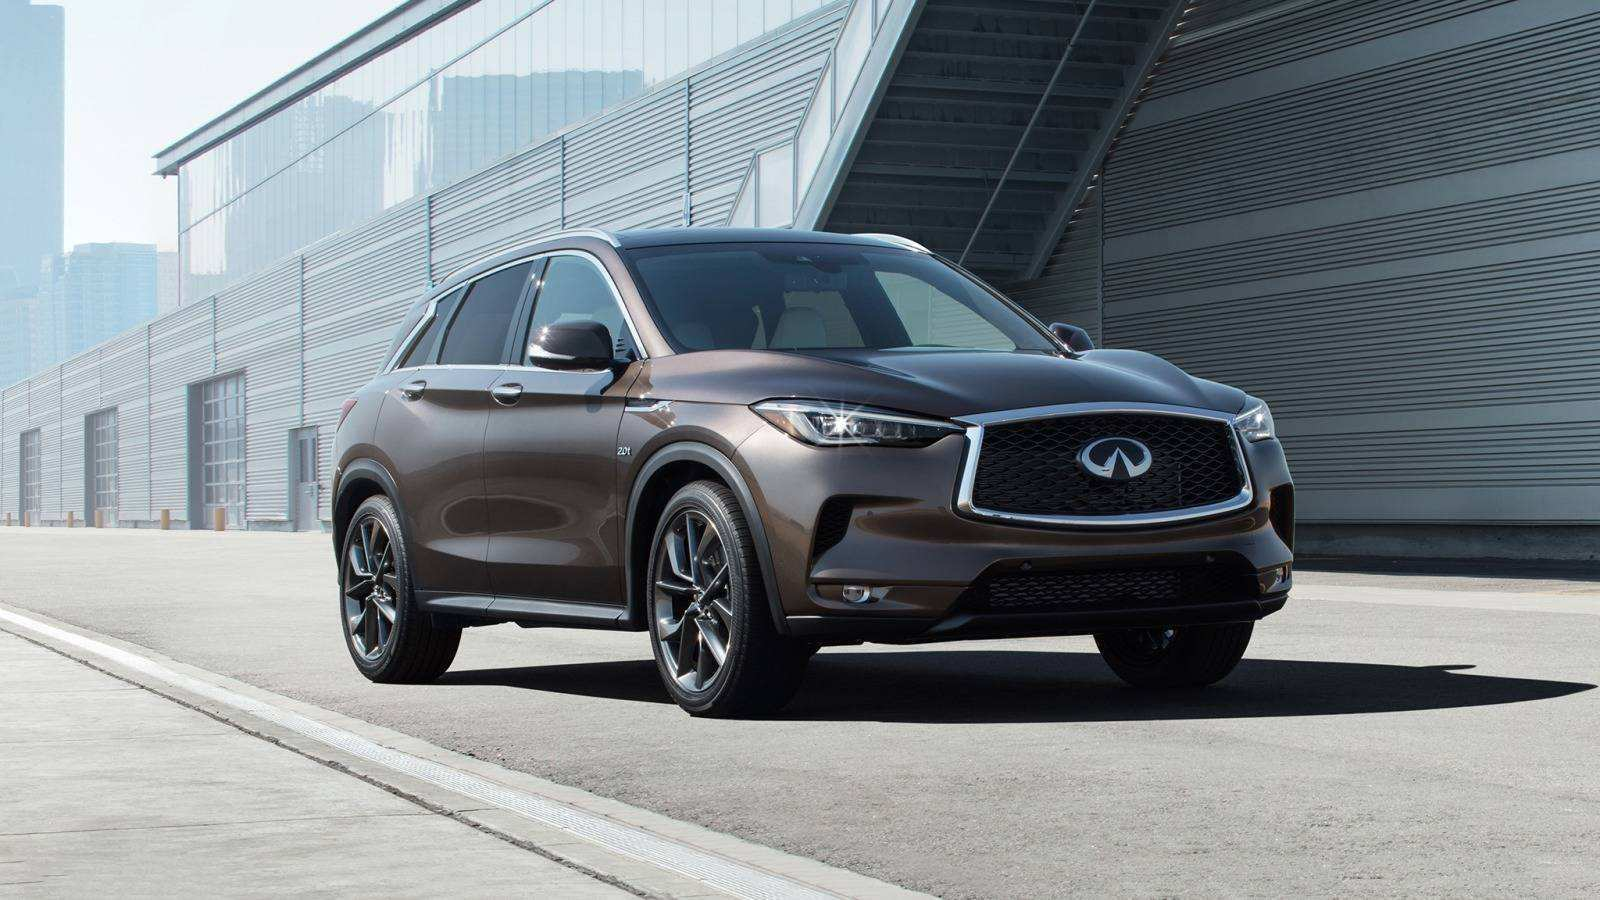 88 The New 2019 Infiniti Qx50 Horsepower Review Performance and New Engine with New 2019 Infiniti Qx50 Horsepower Review